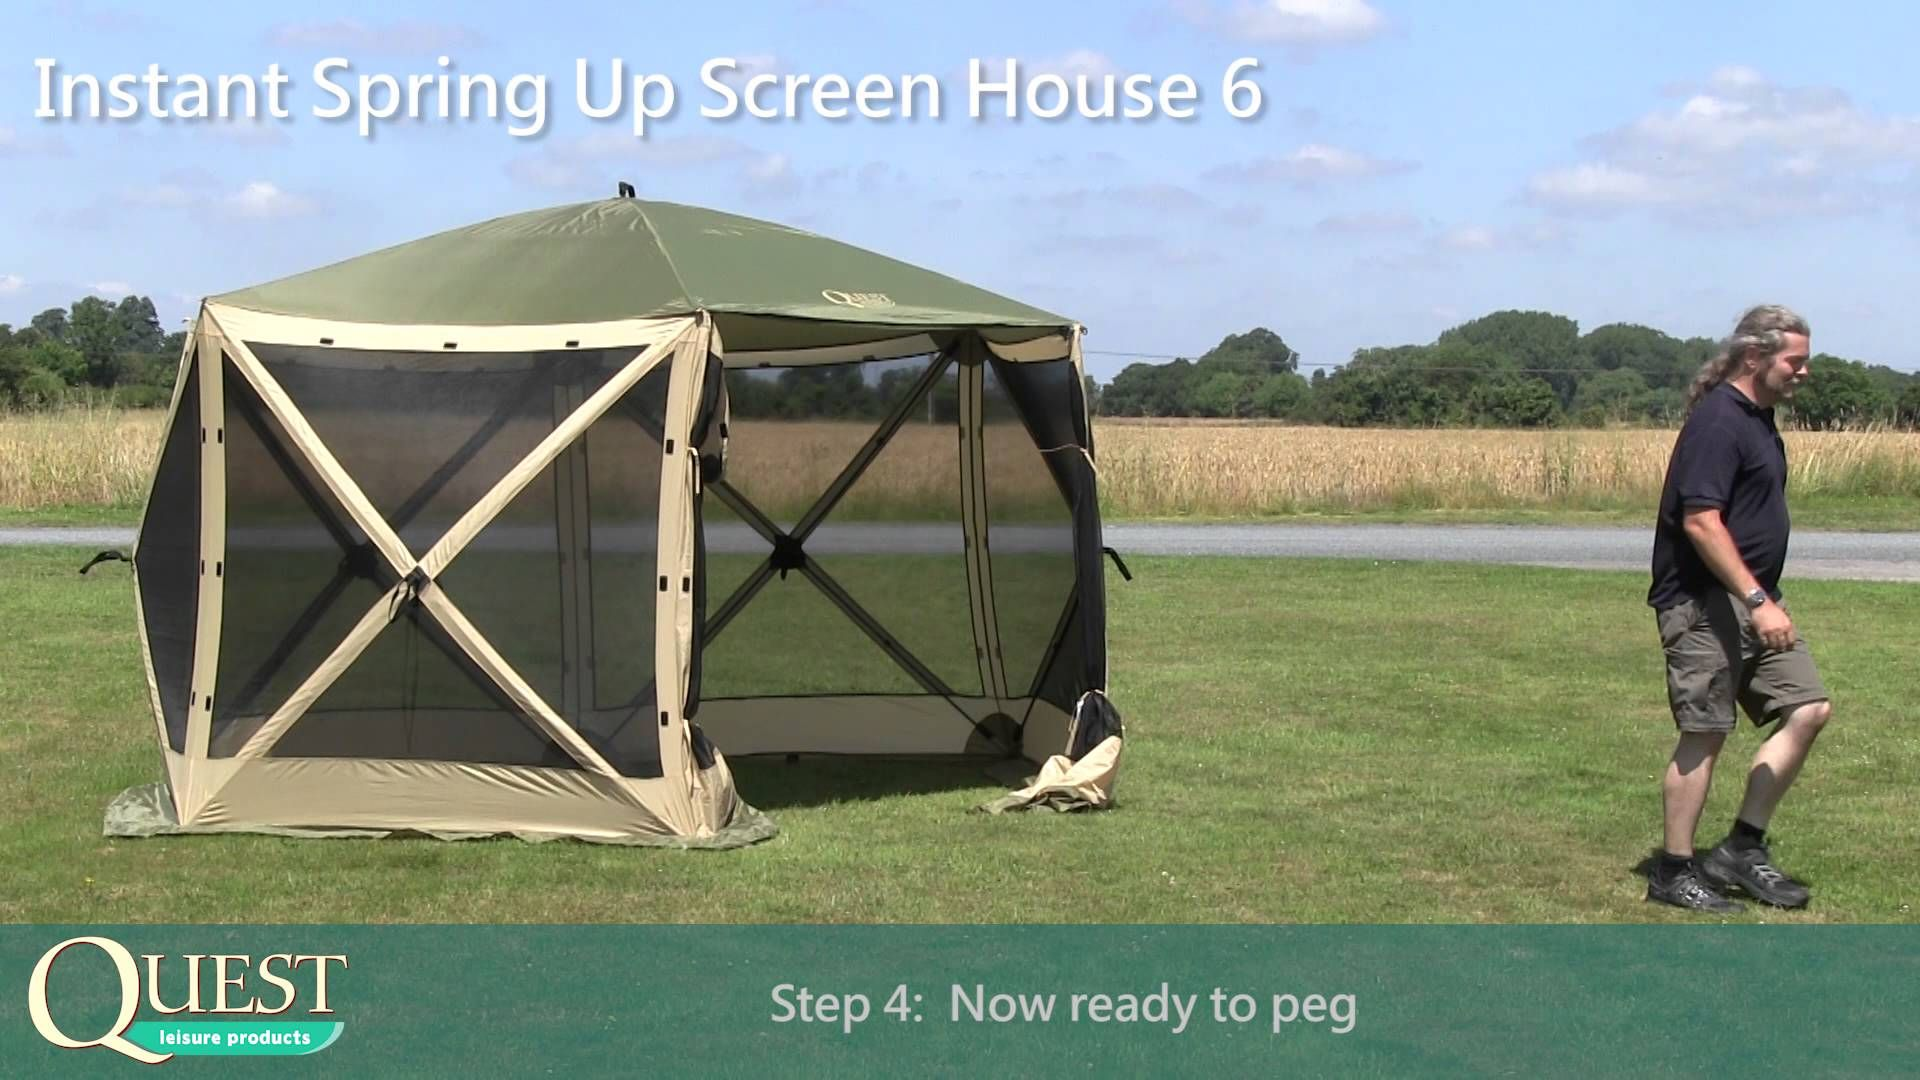 Notcutts Quest Instant Springup Gazebo Youtube Screen House